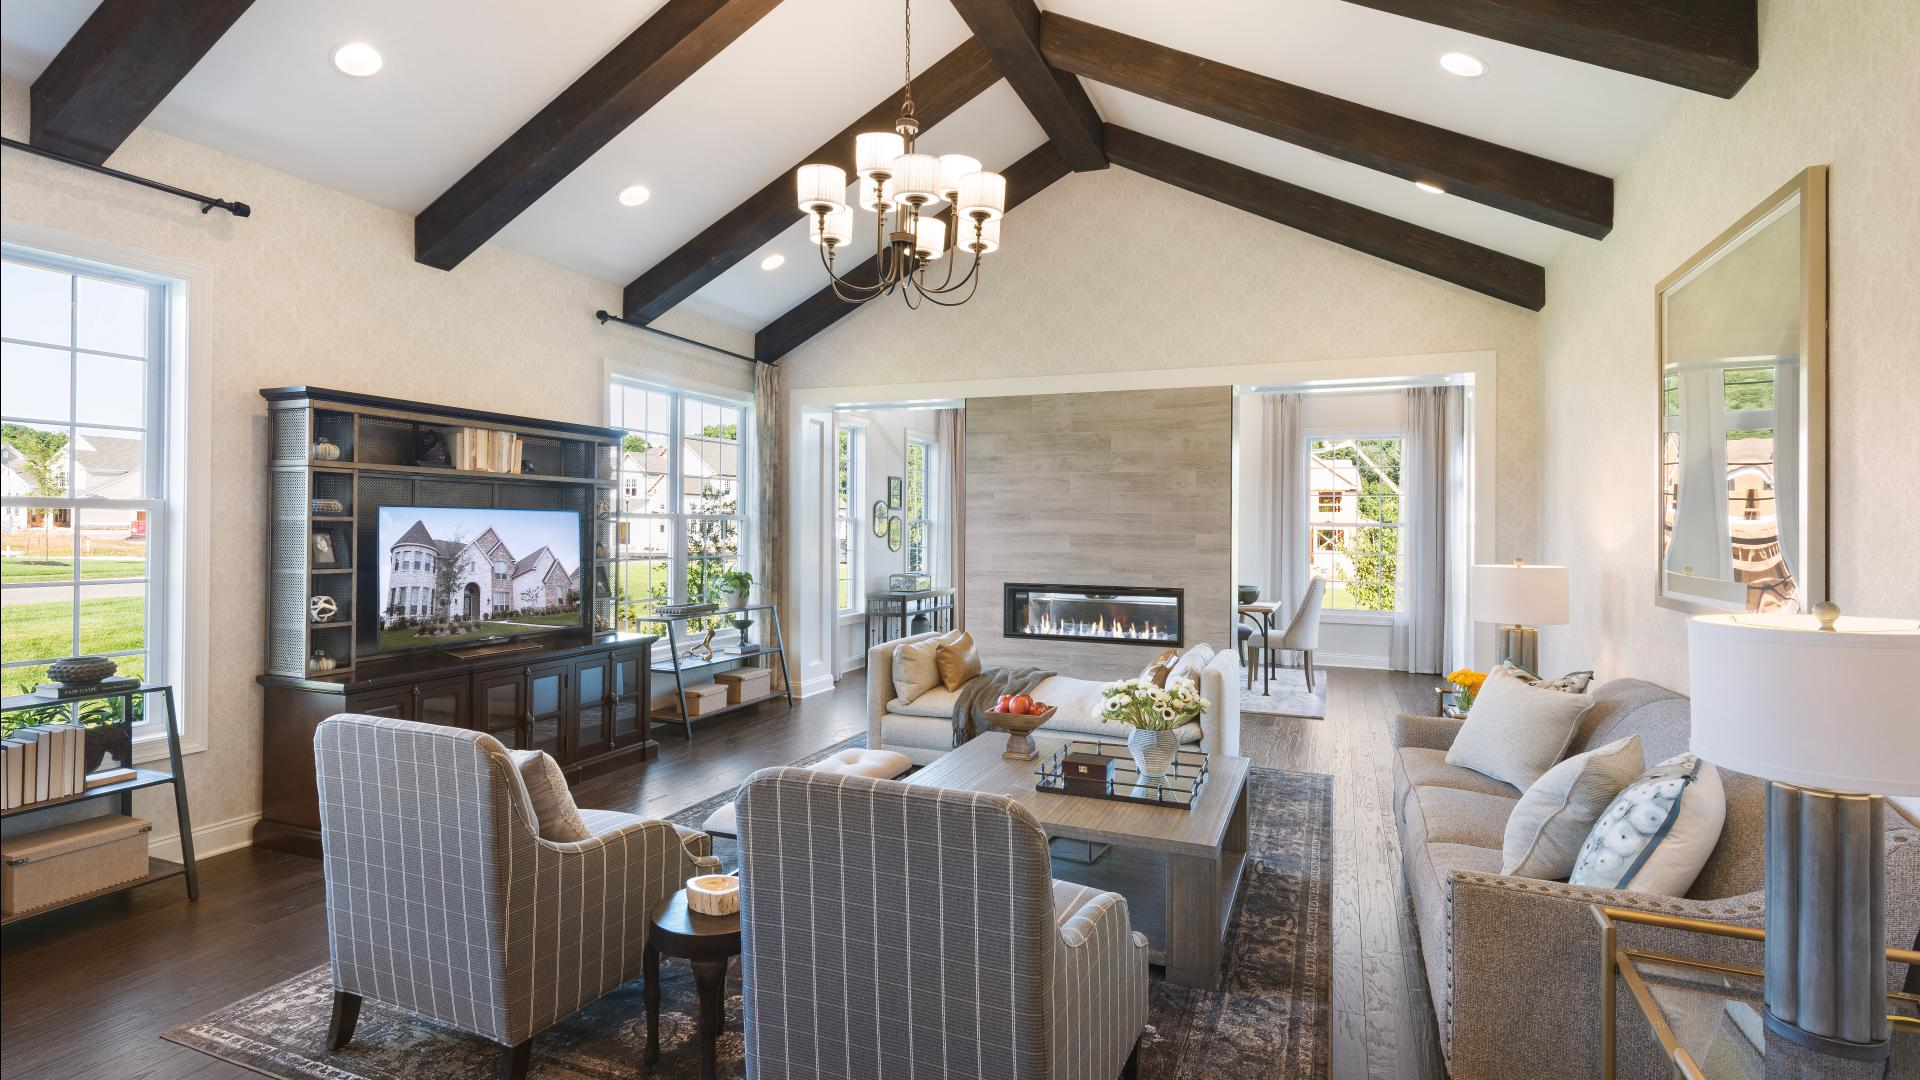 The great room is the perfect setting for relaxation with its cozy fireplace and ample natural light